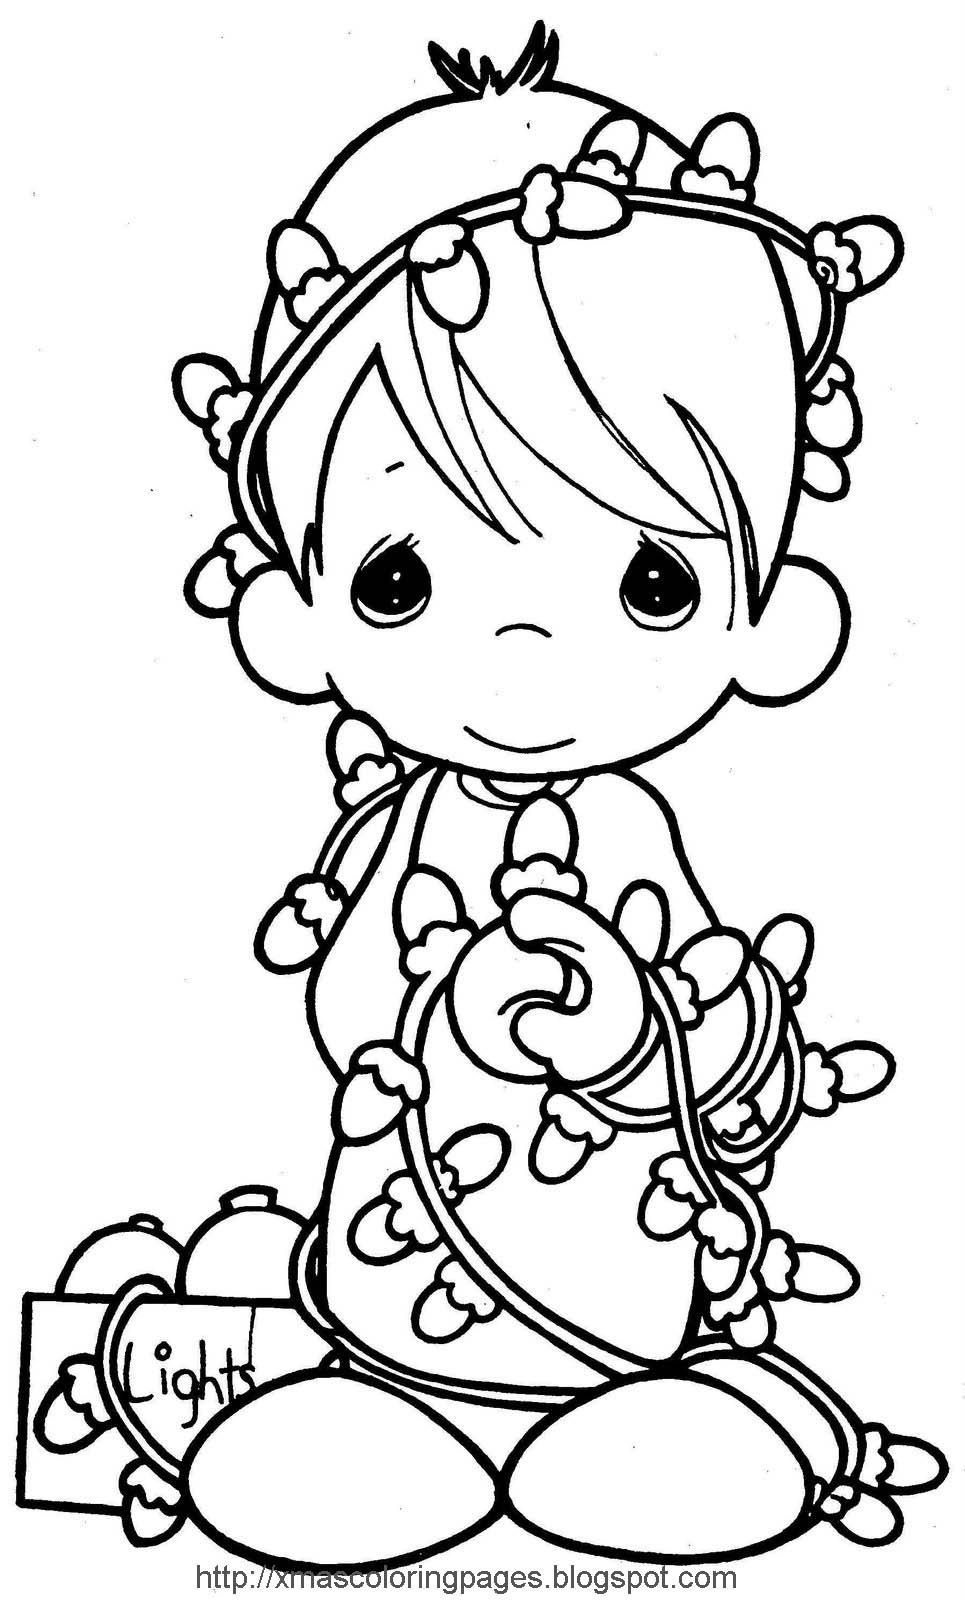 XMAS COLORING PAGES Angel coloring pages, Christmas